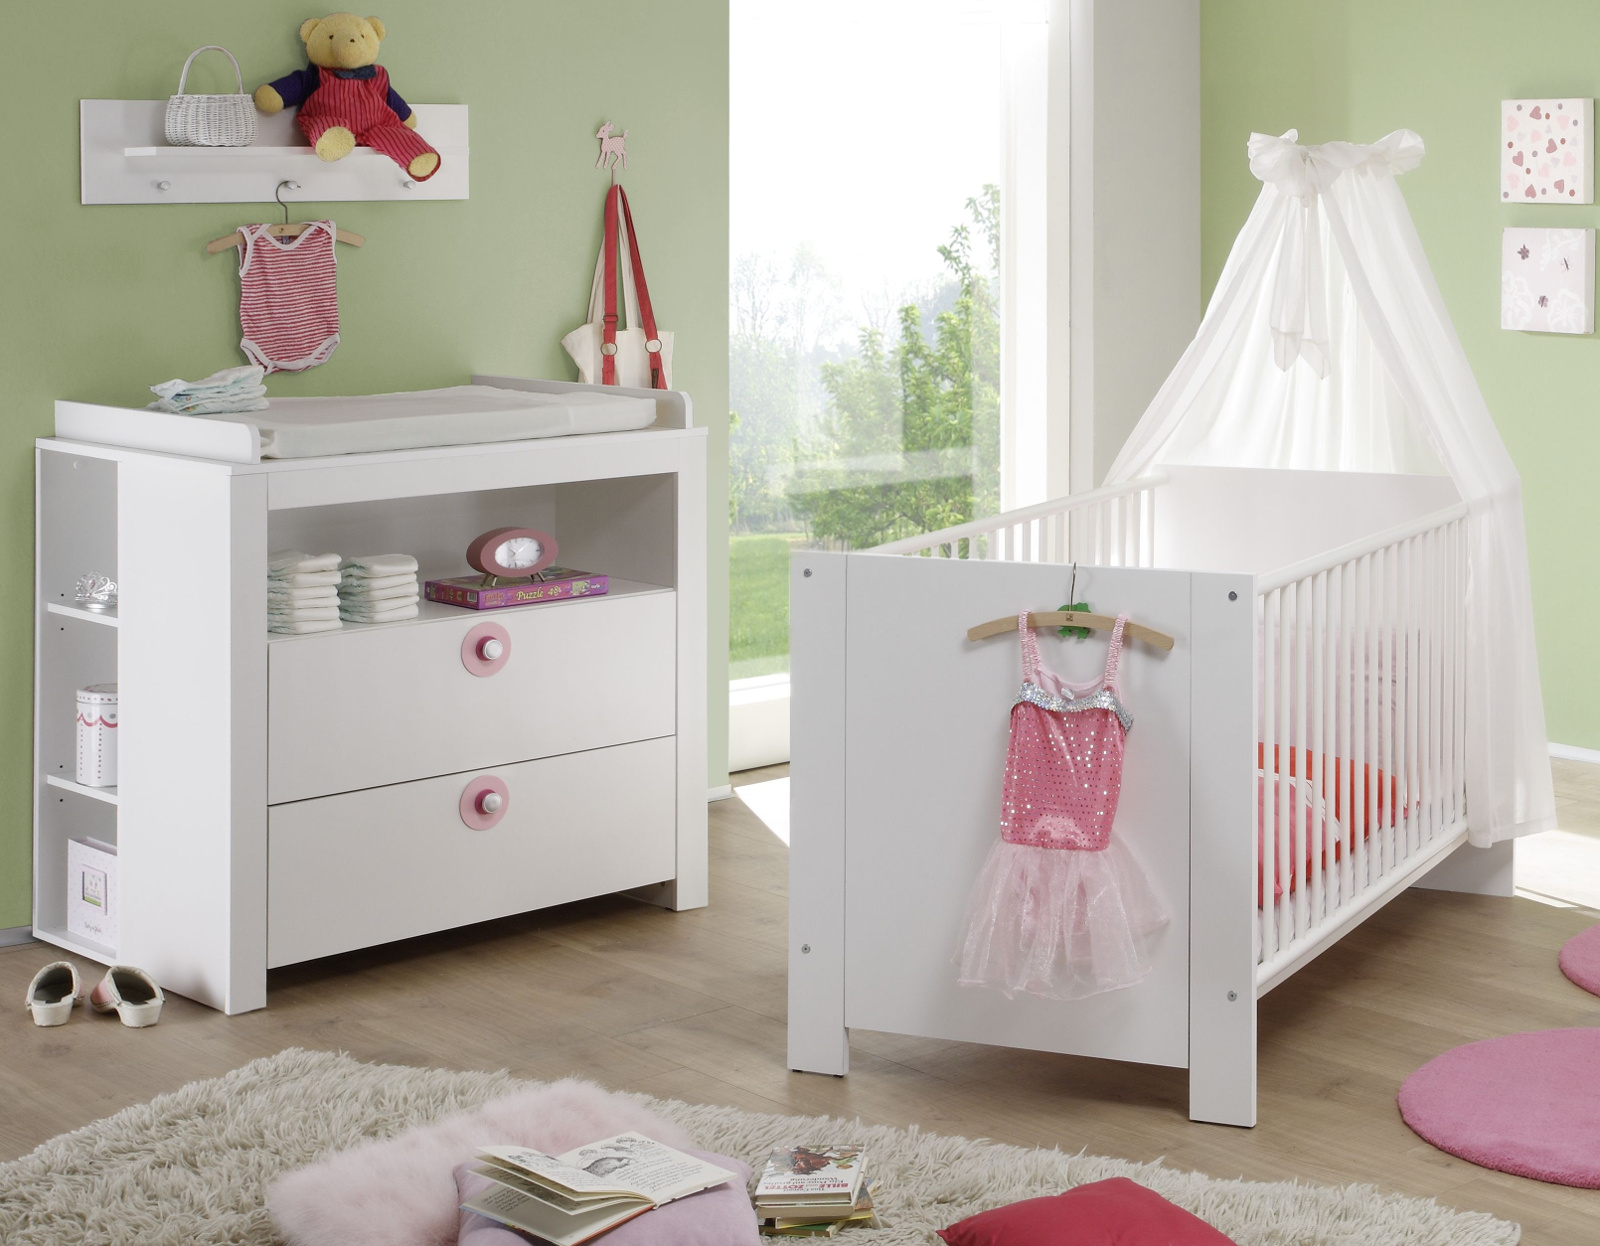 babyzimmer wickelkommode olivia regal wei rosa. Black Bedroom Furniture Sets. Home Design Ideas